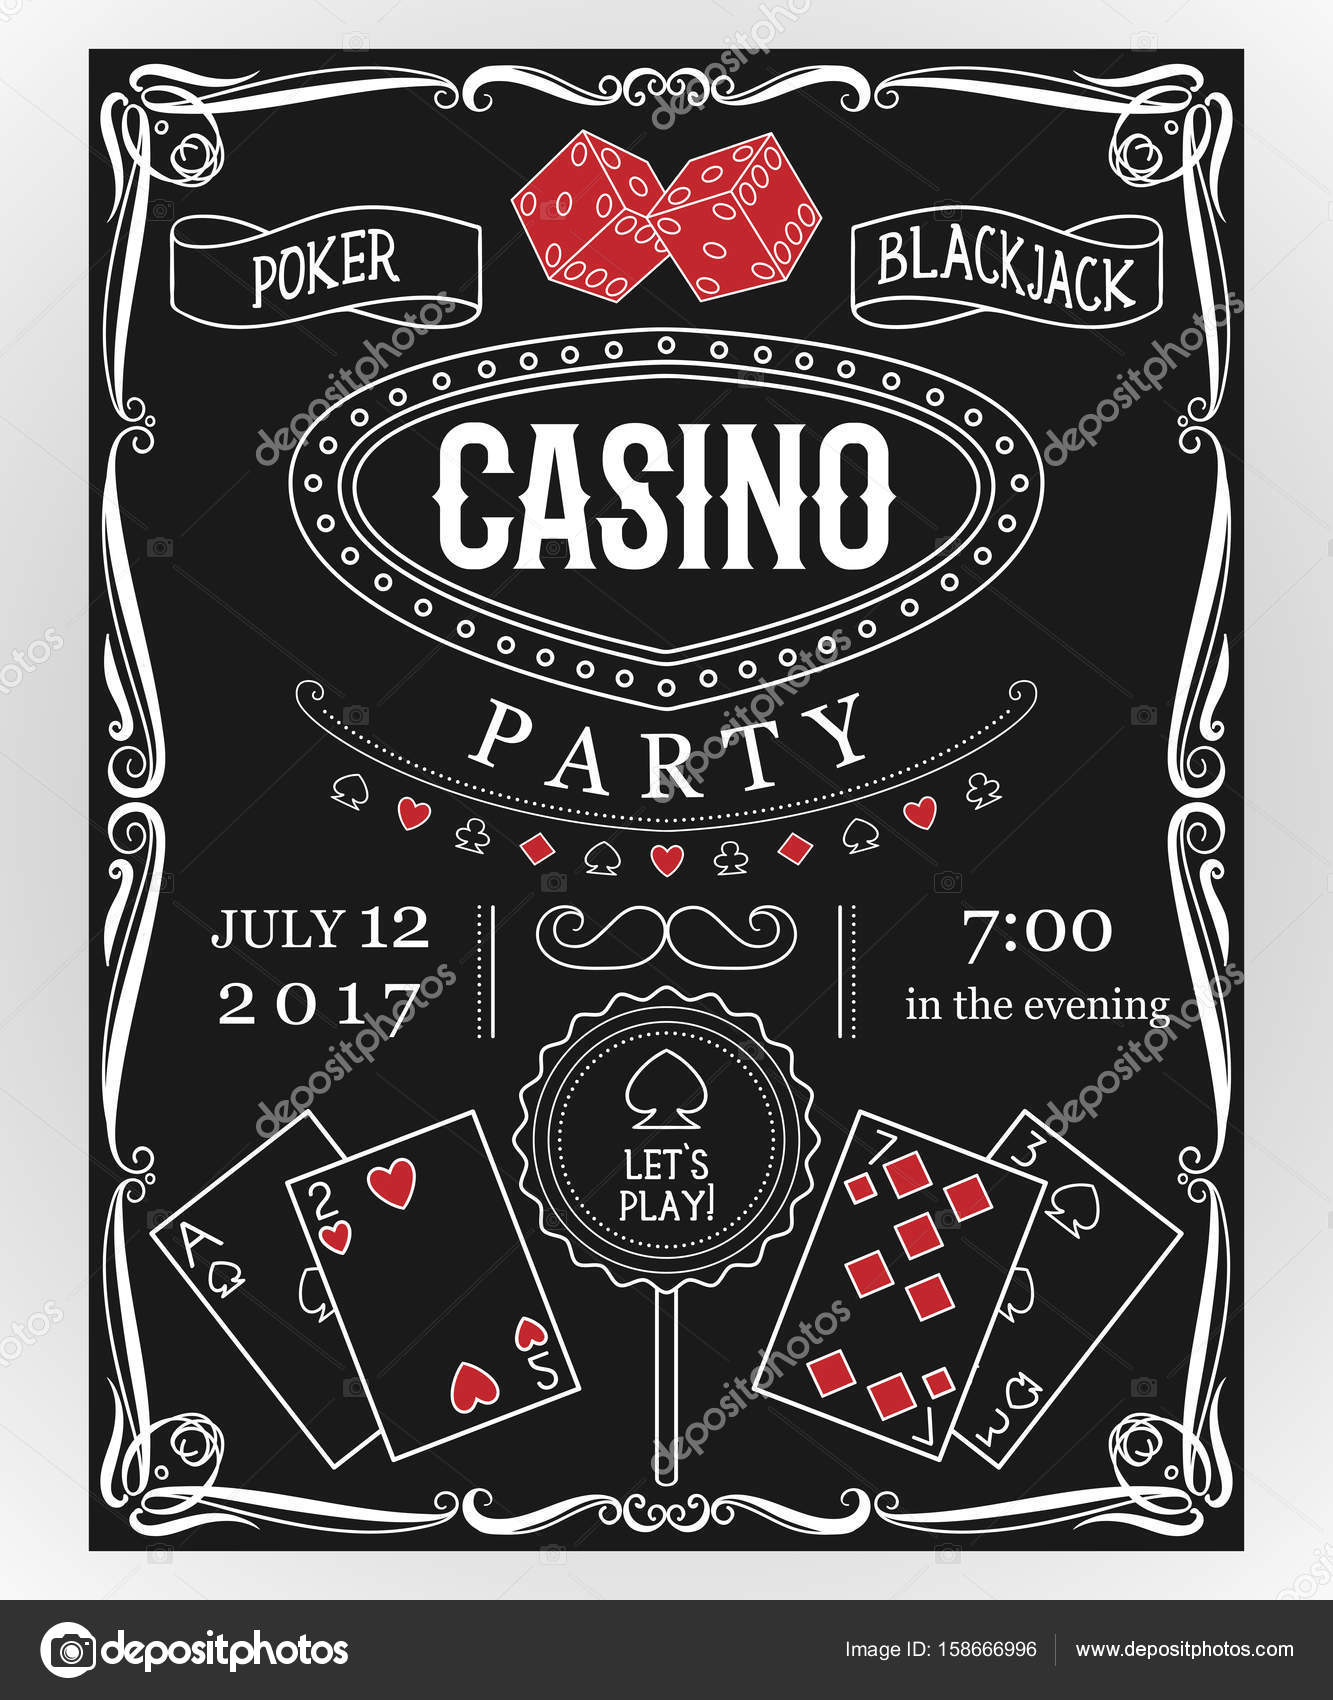 Casino party invitation on chalkboard with decorative elements ...